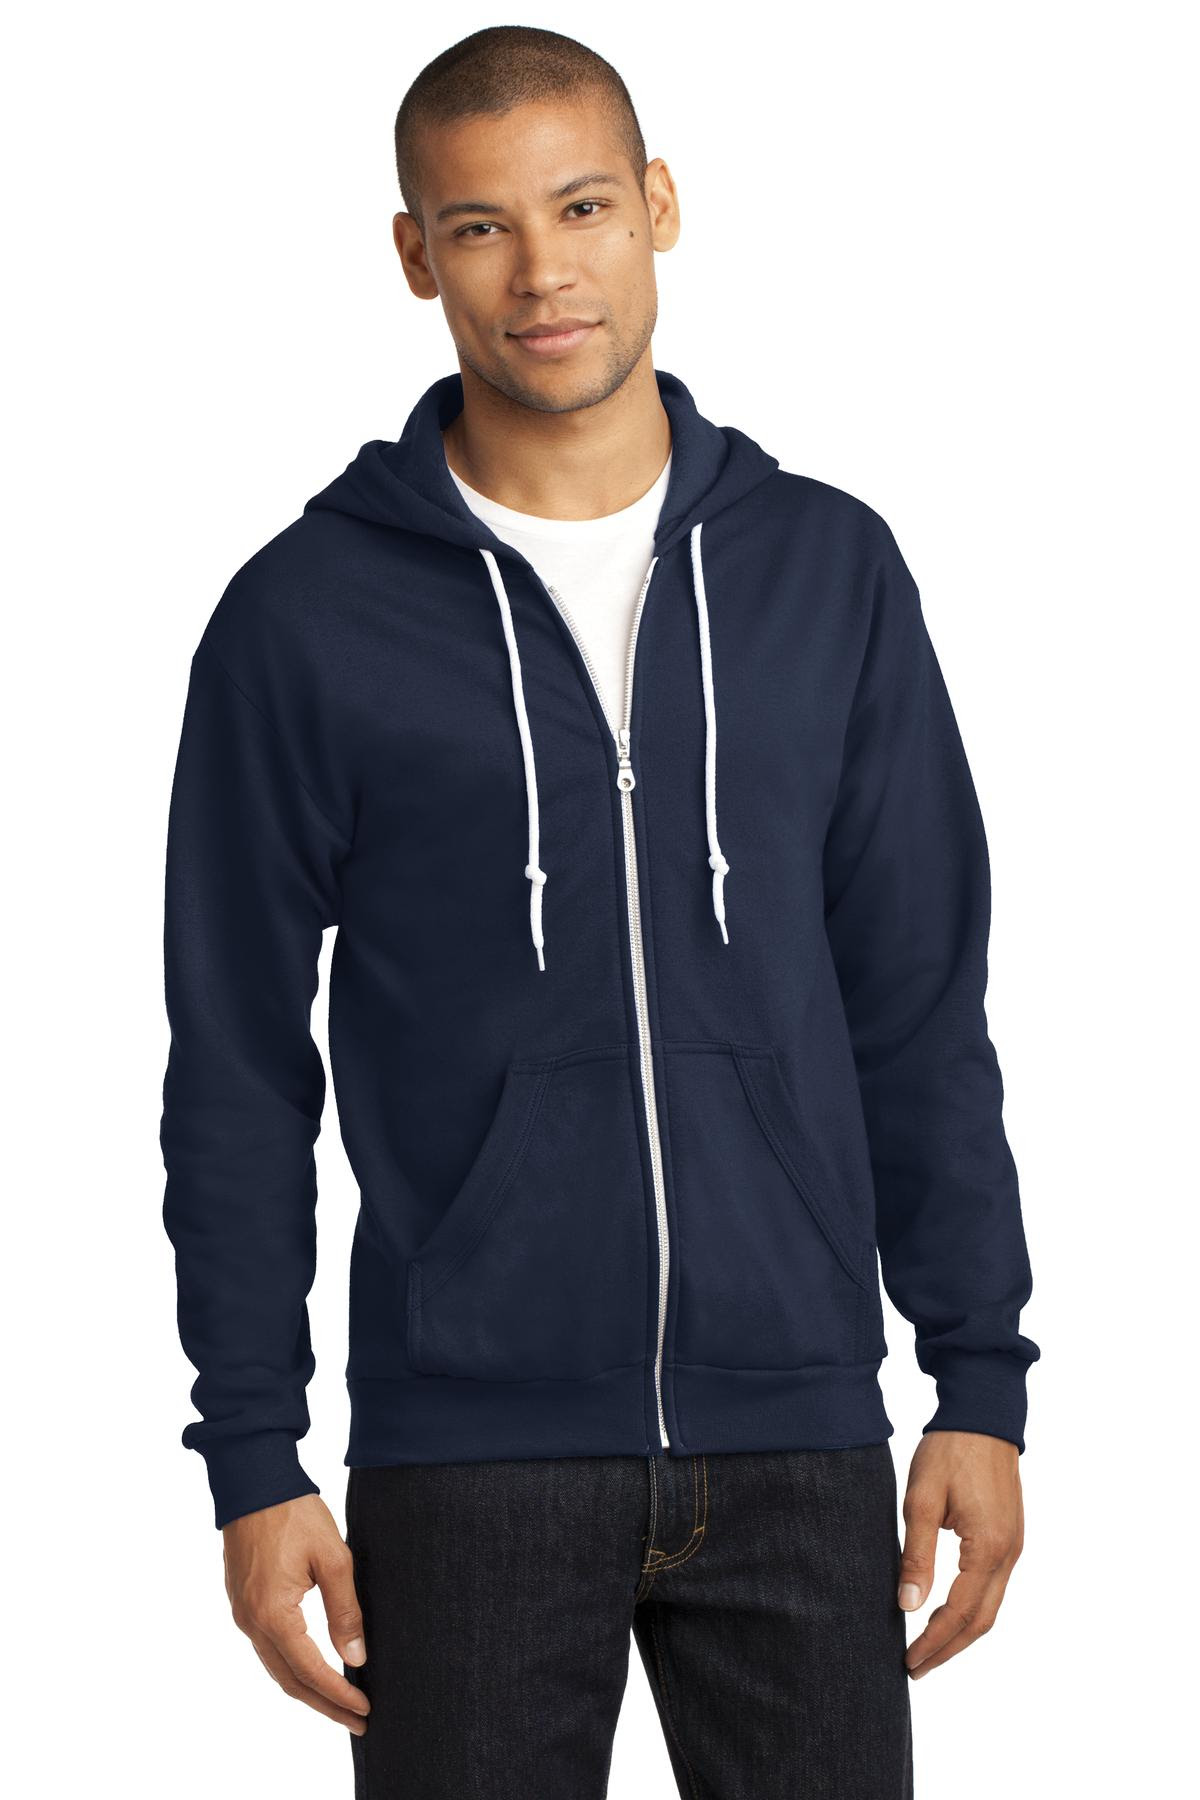 Men hooded sweater personality side zipper black gray from china online